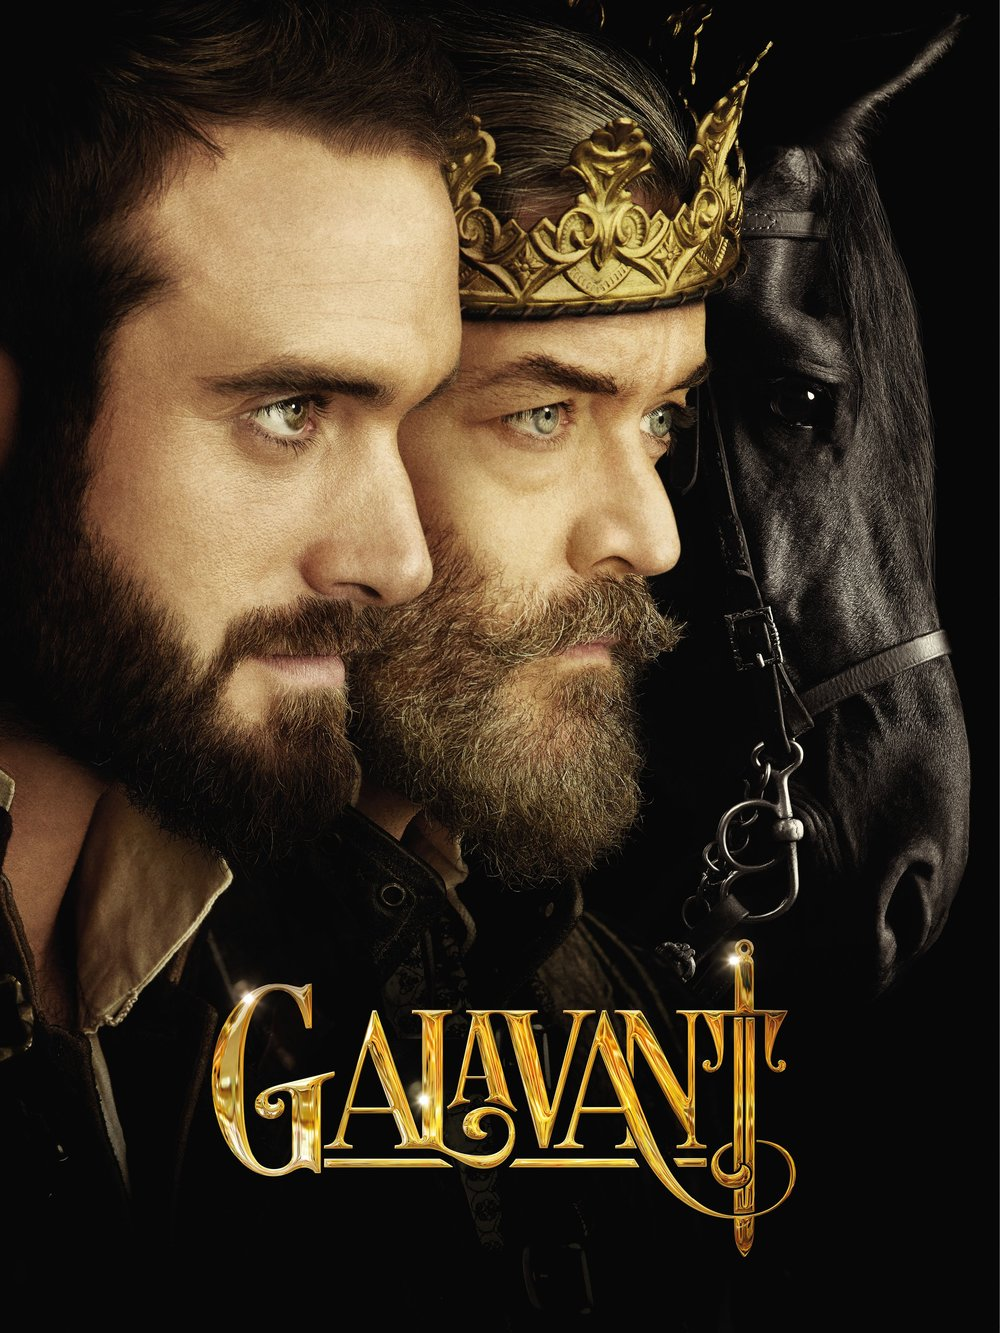 Galavant  - Series IIART DIRECTOR ABC studios - Disney21 min, 10 episode. American musical fantasy comedy set in medieval times.